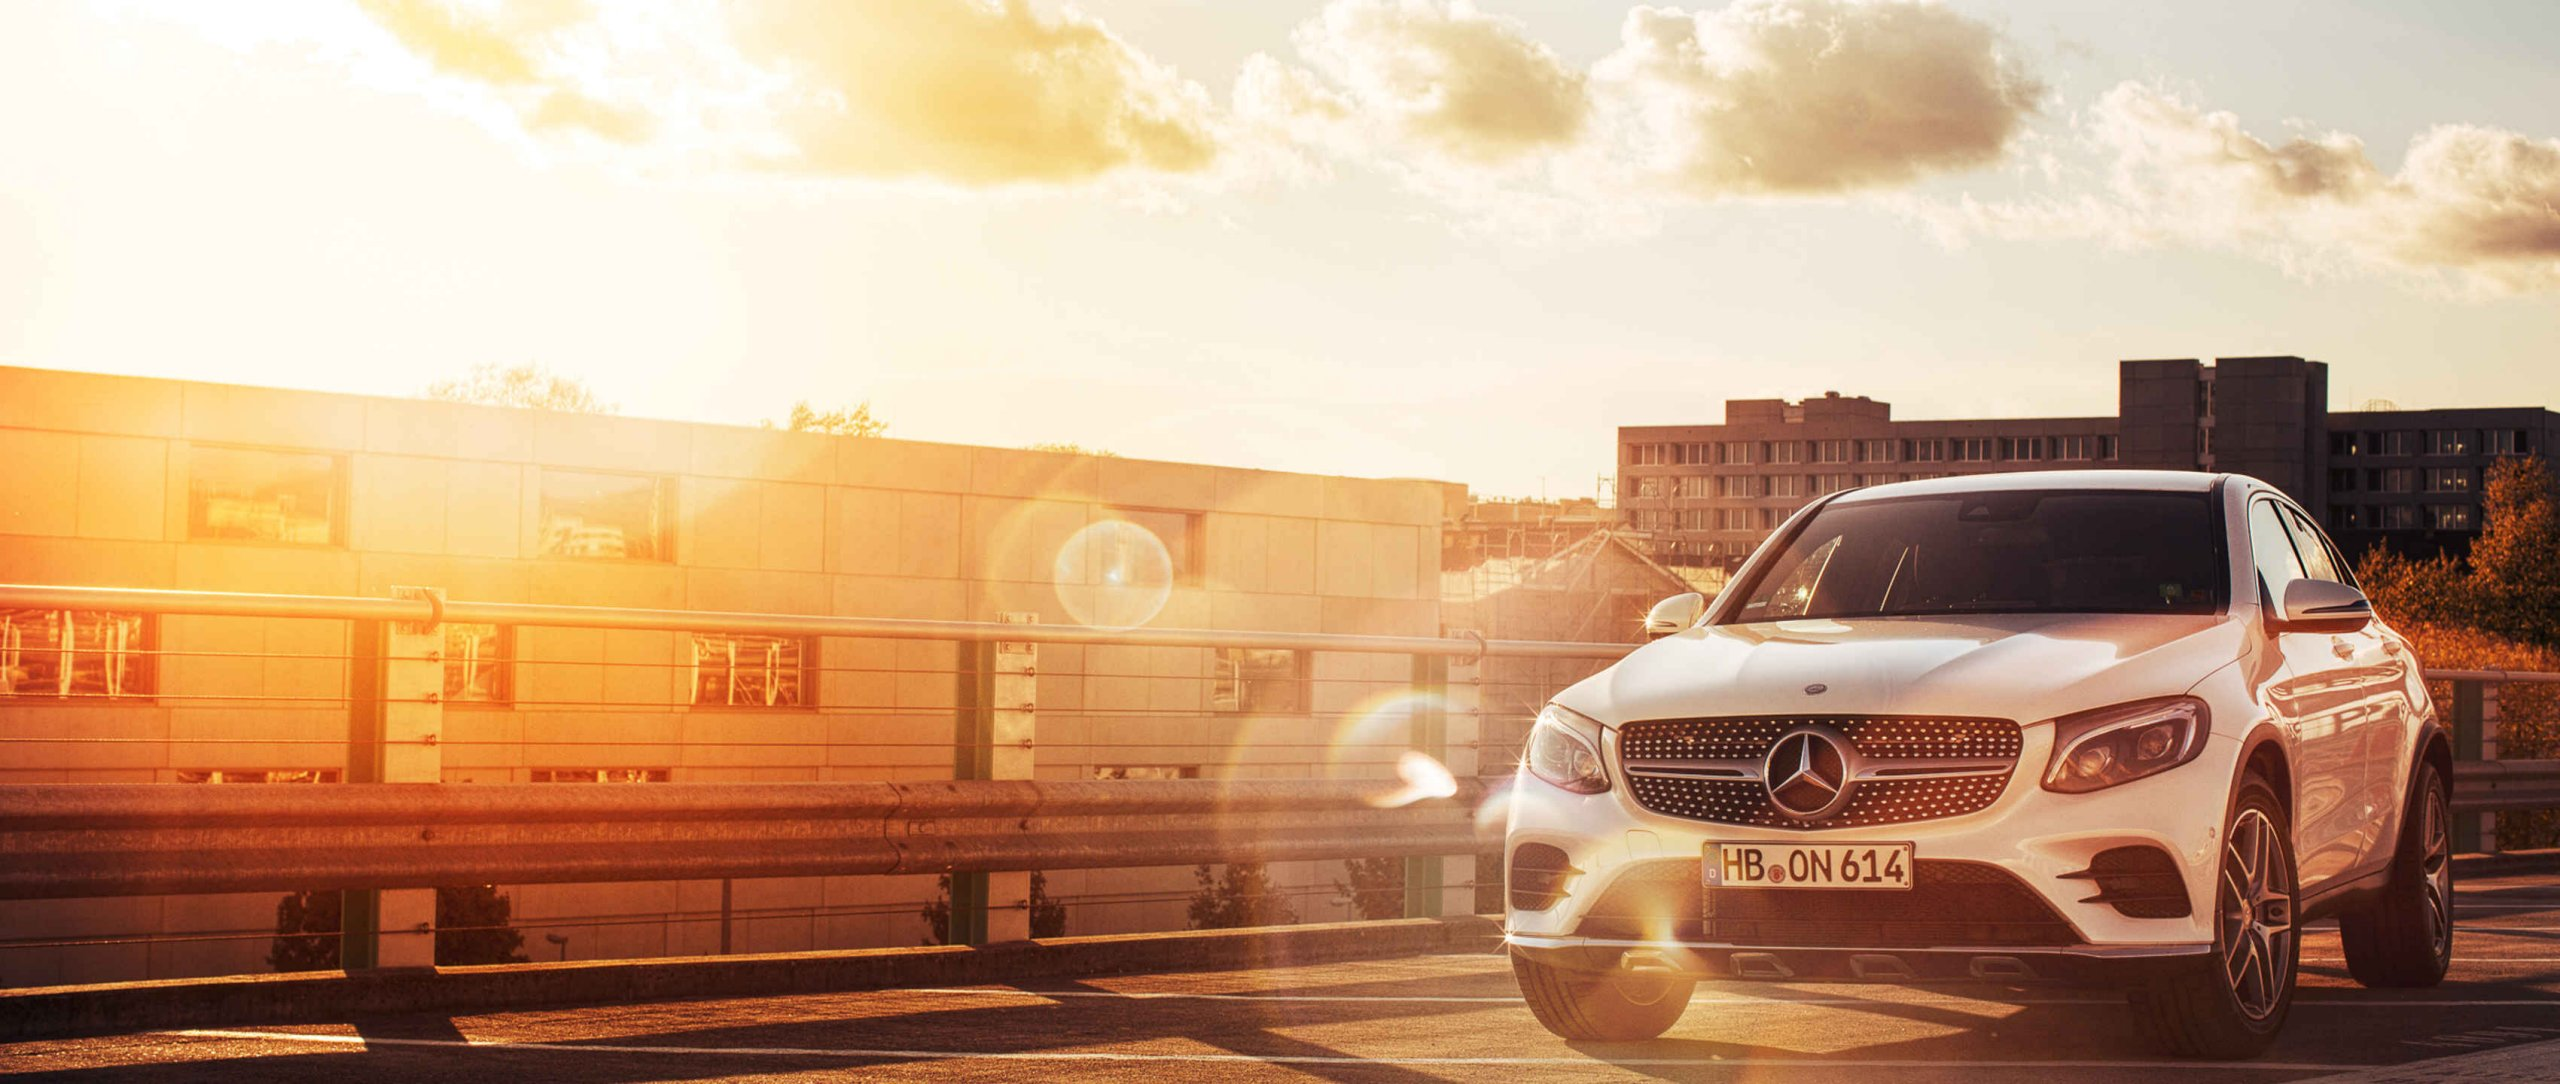 Mercedes-Benz GLC 220 d 4MATIC Coupé (C 253): Front view on roof before sunset.